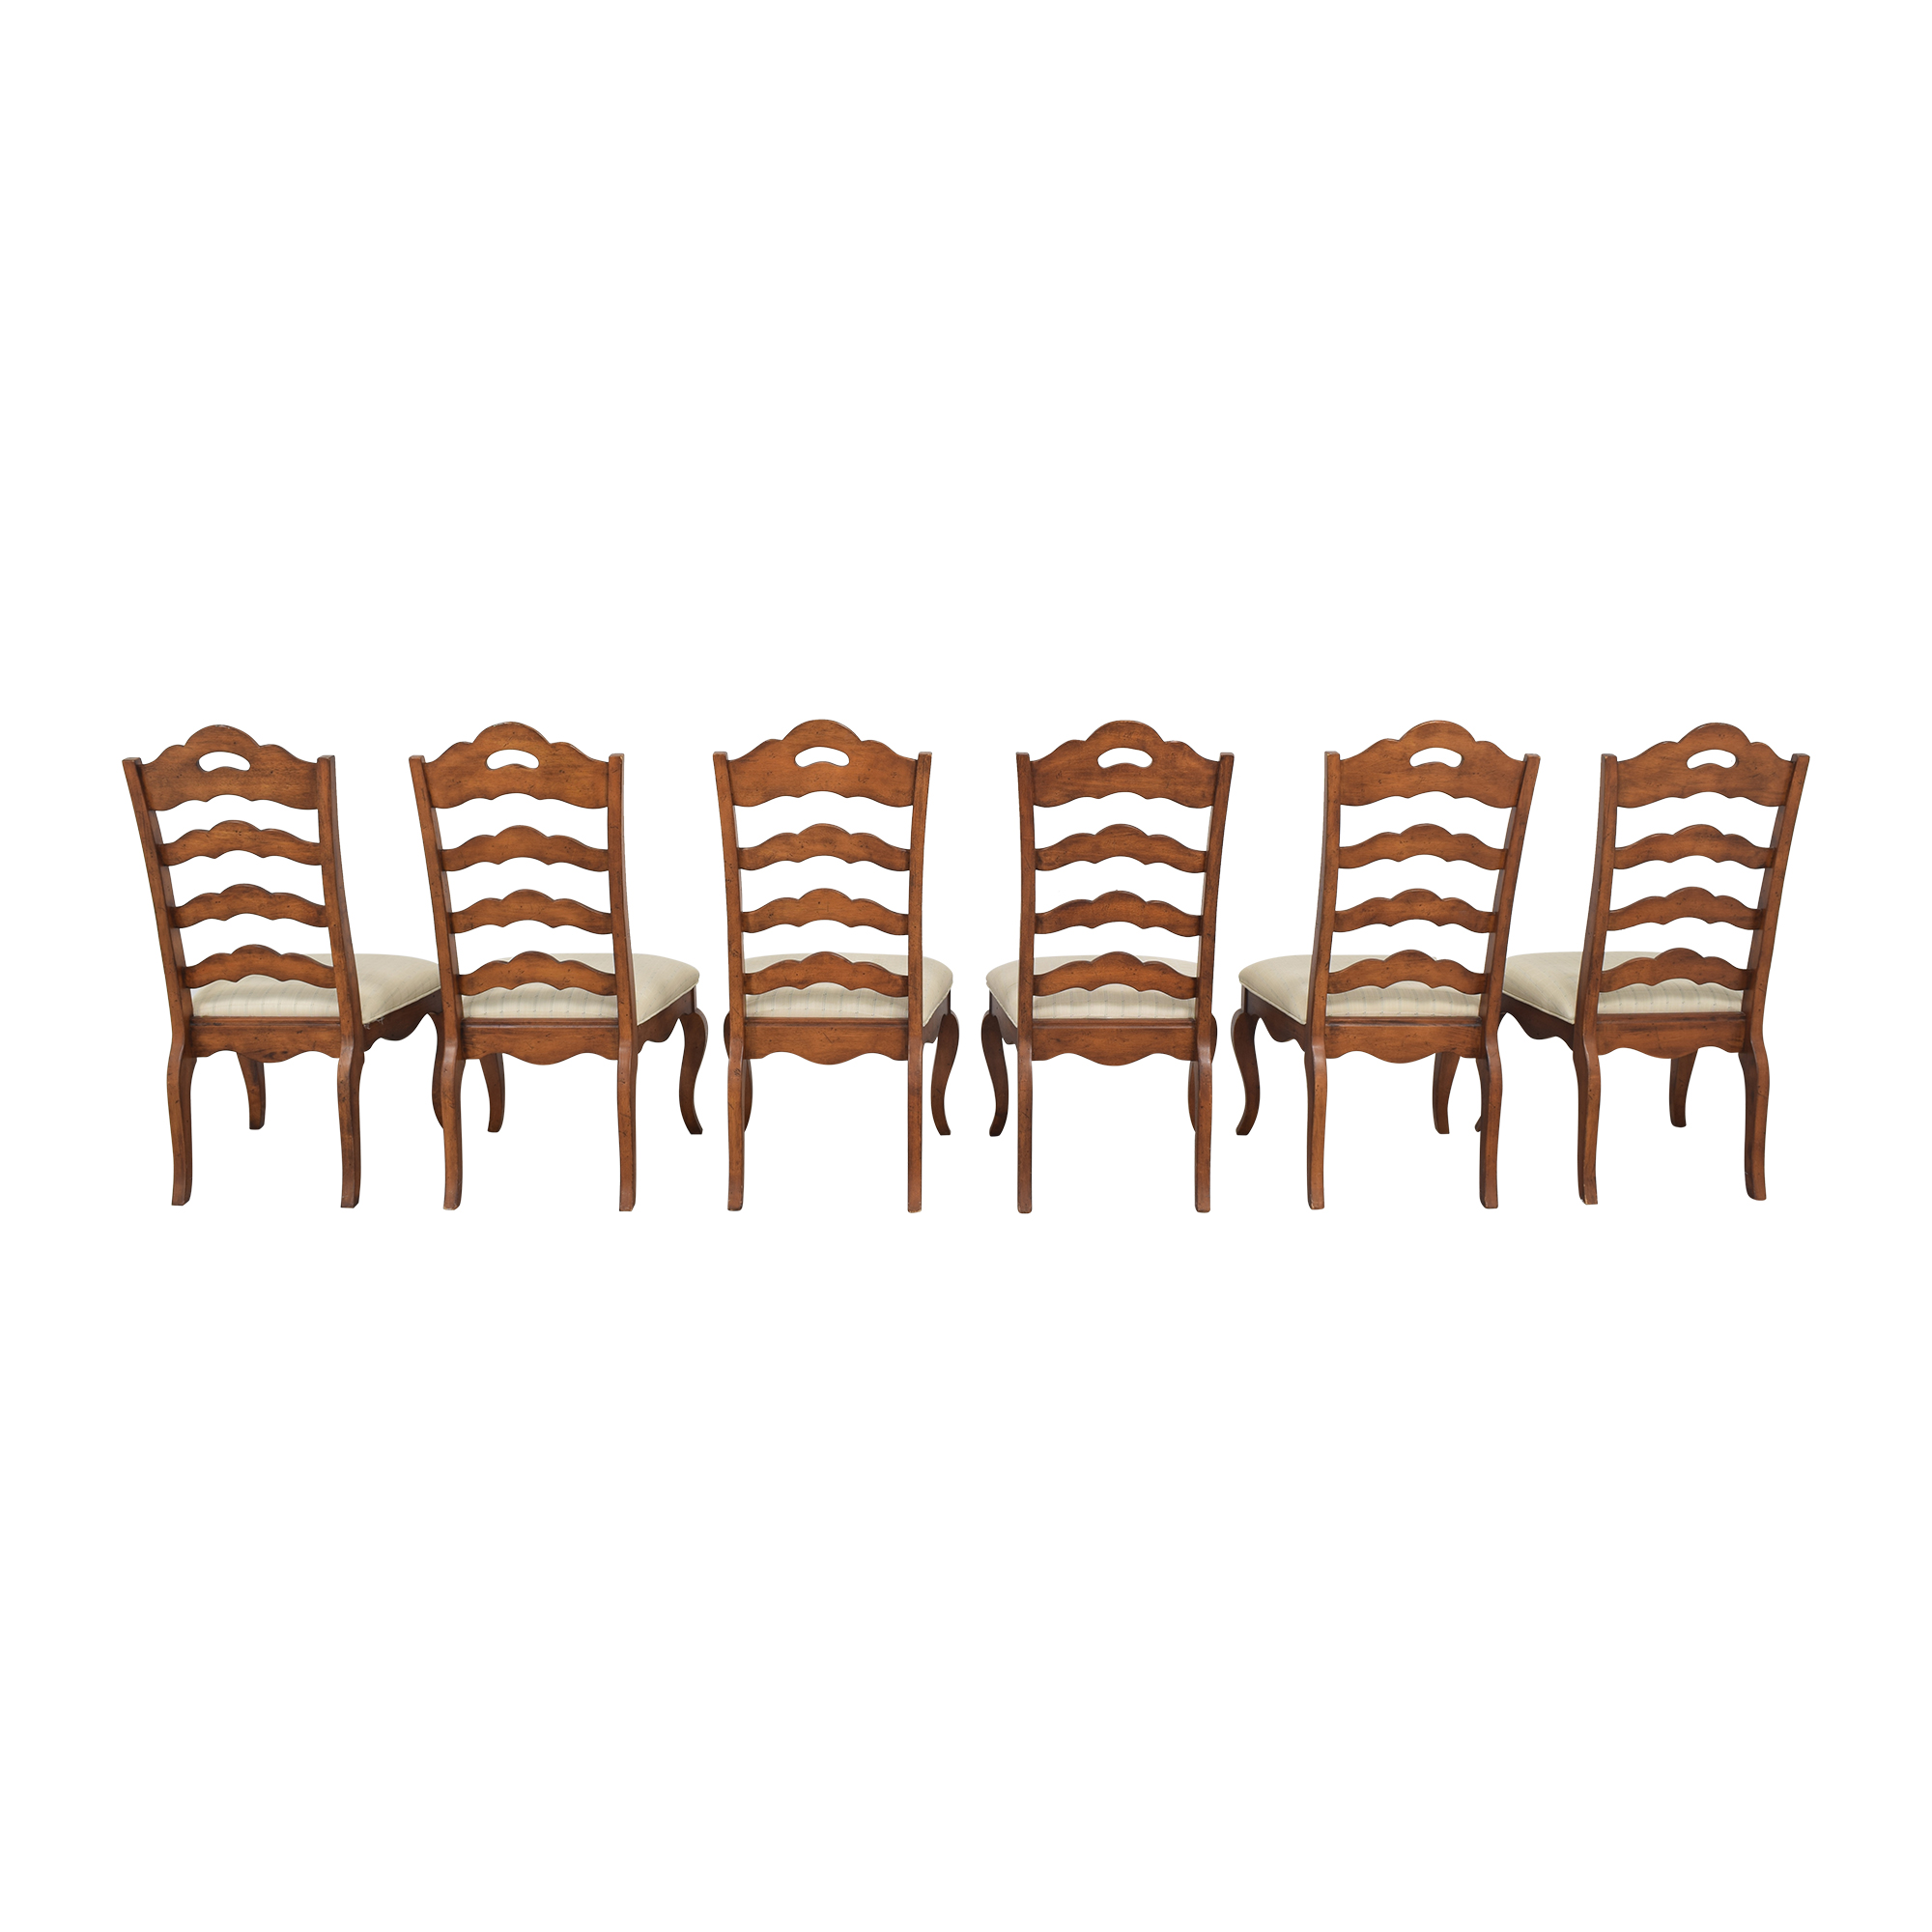 Universal Furniture Universal Furniture Ladder Back Dining Chairs on sale